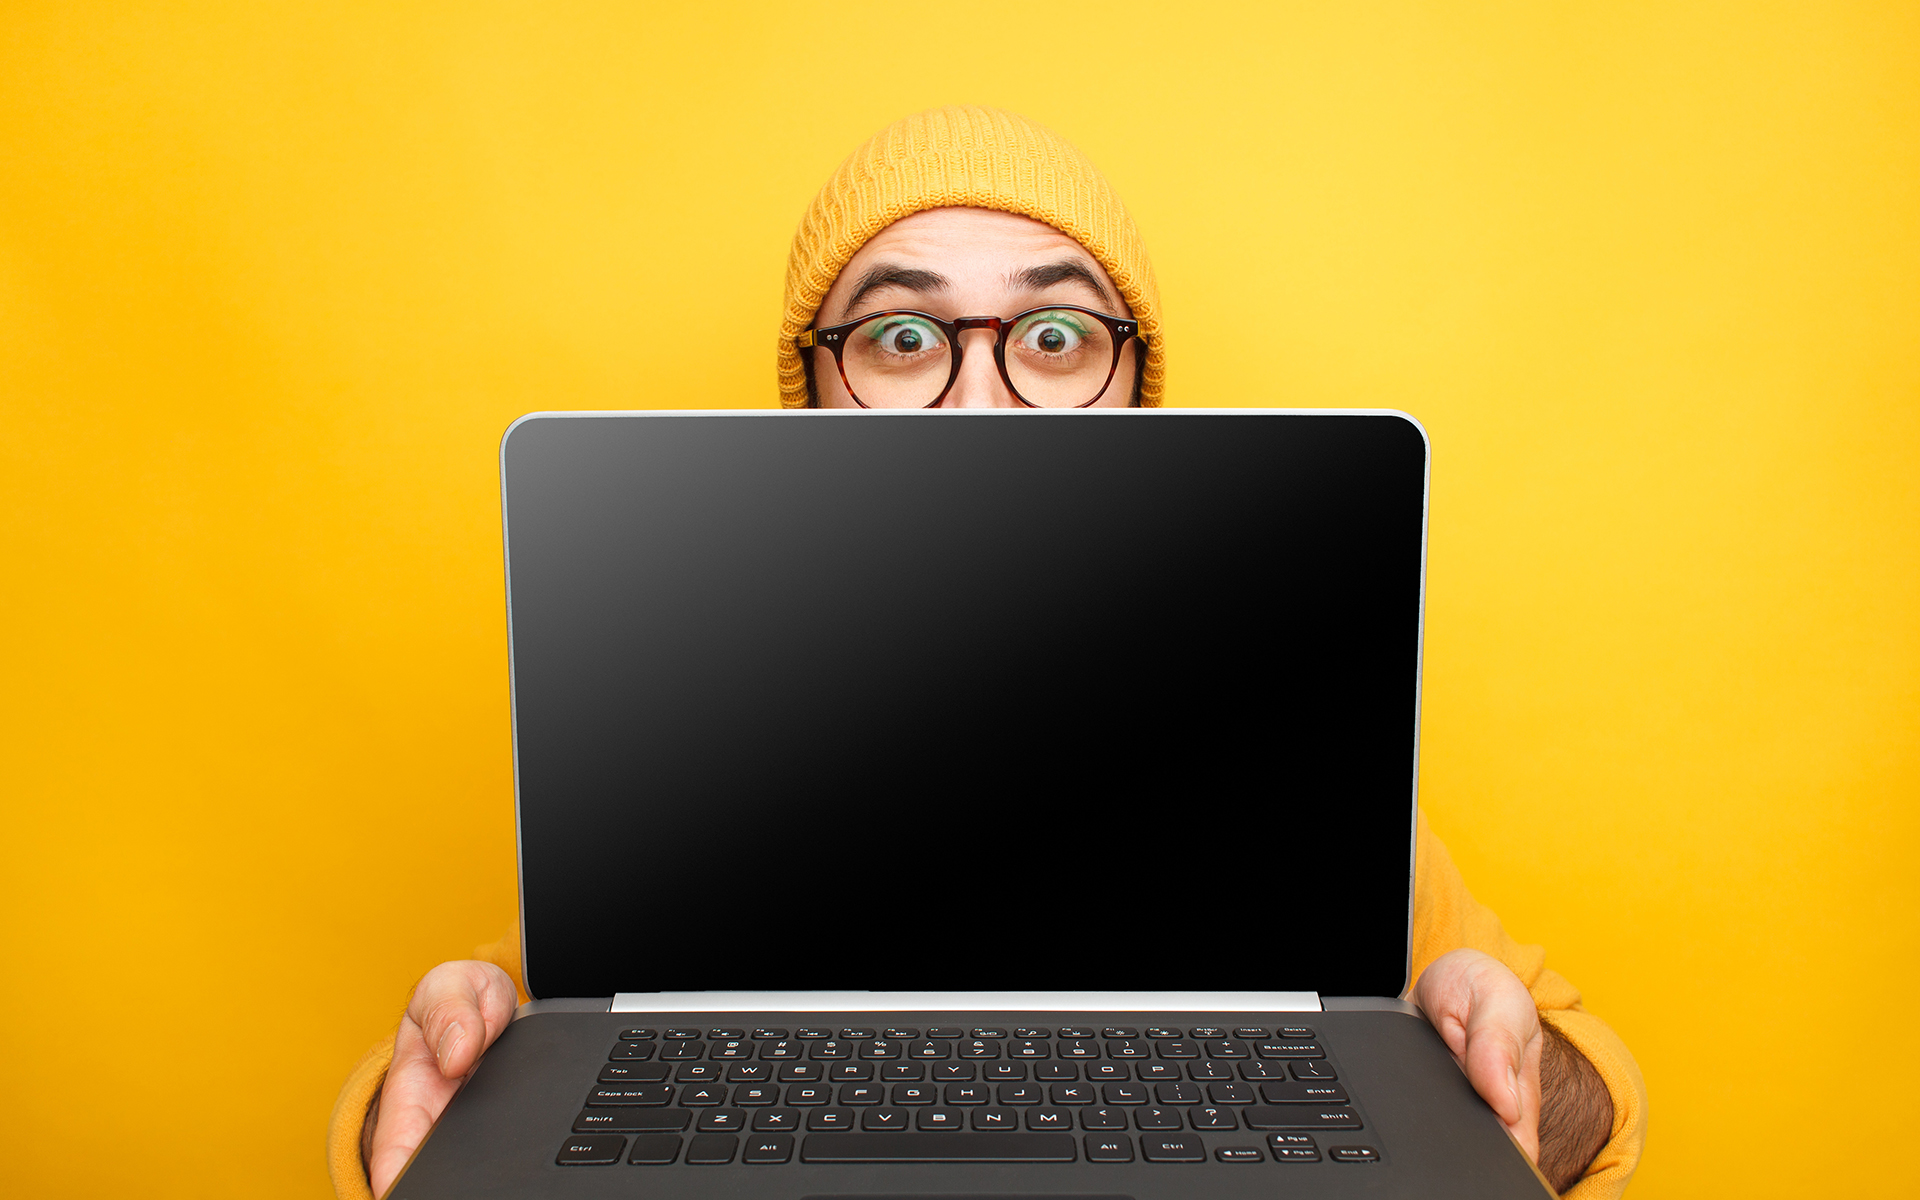 Can text be used for the greater good? - Expressive young man in glasses giving innovative laptop making presentation on yellow.